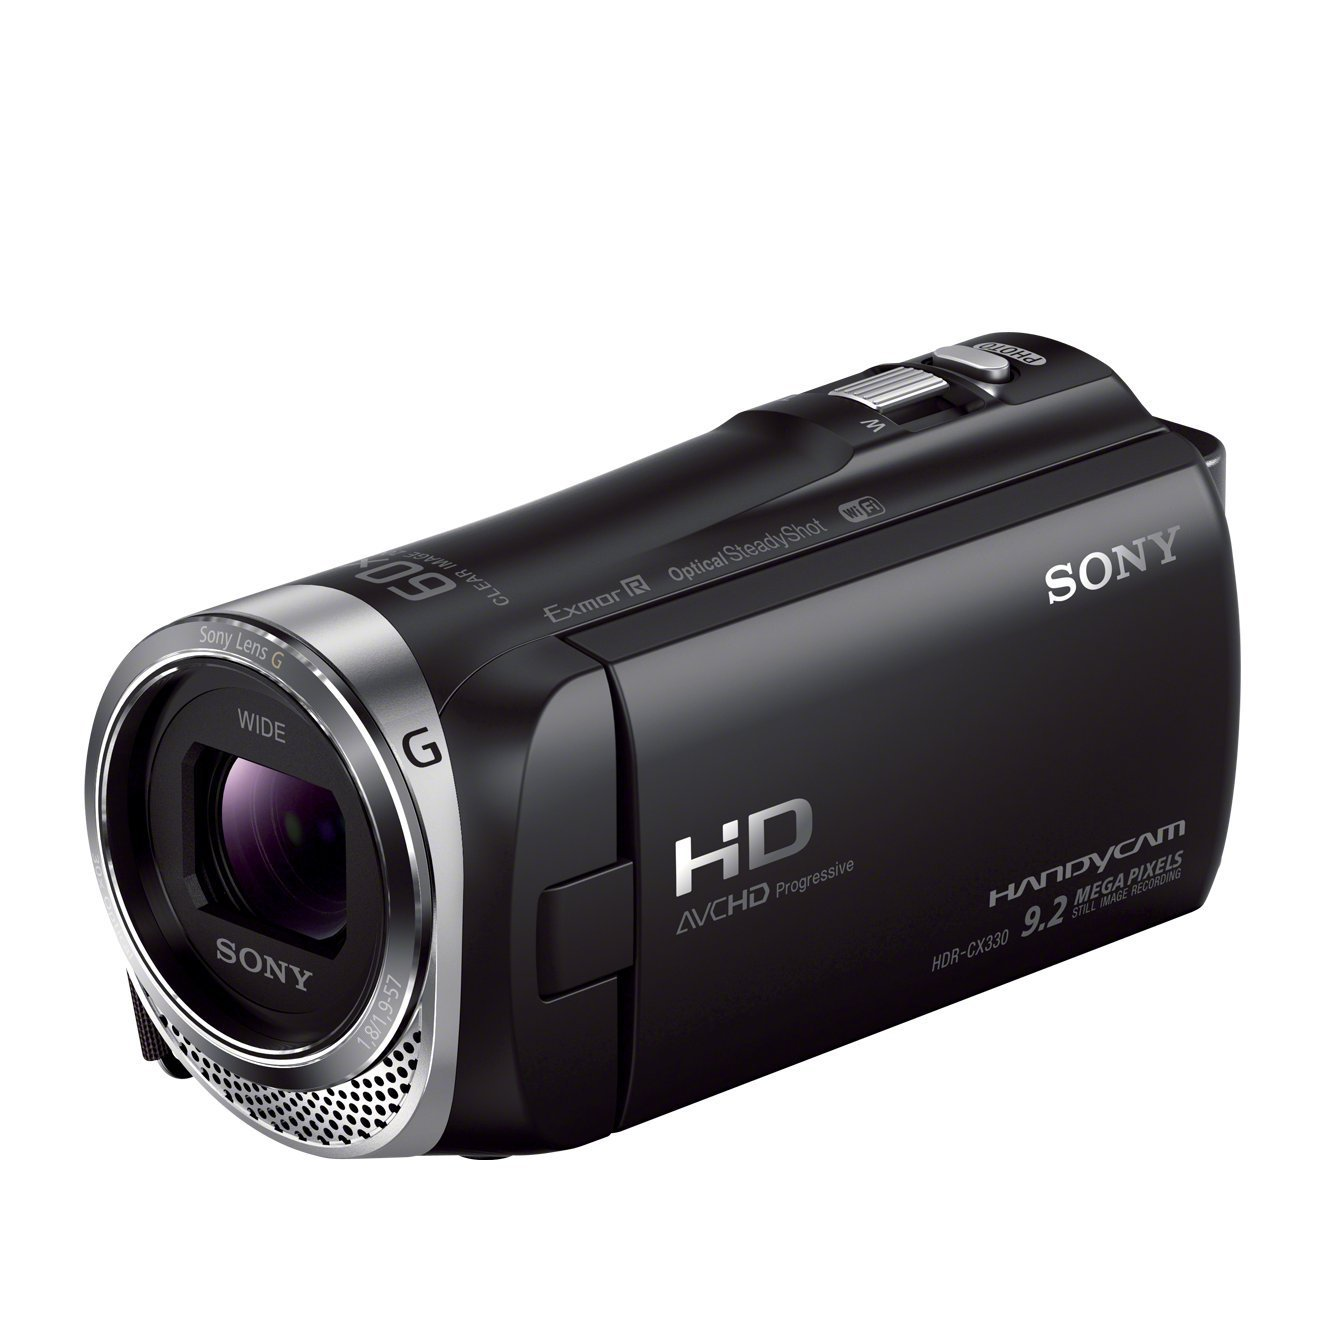 "Sony Handycam HDR-CX330E - Videocámara Full HD 1080p (2.3 Mp, pantalla de 2.7"", zoom óptico 30x, estabilizador, WiFi), negro"